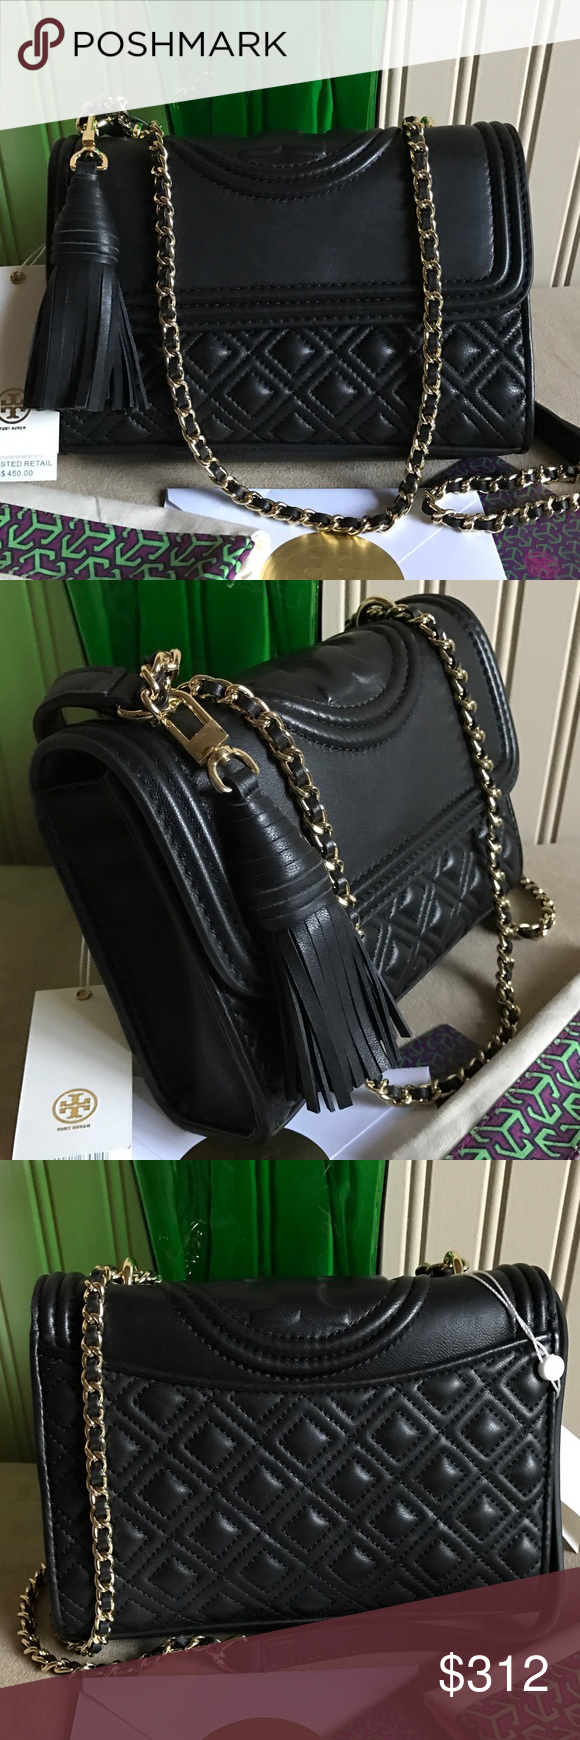 c349d59f342e1 New Tory Burch Fleming Smaller Black New Tory Burch Fleming Small  convertible leather shoulder bag in black. New with tag and dust bag.